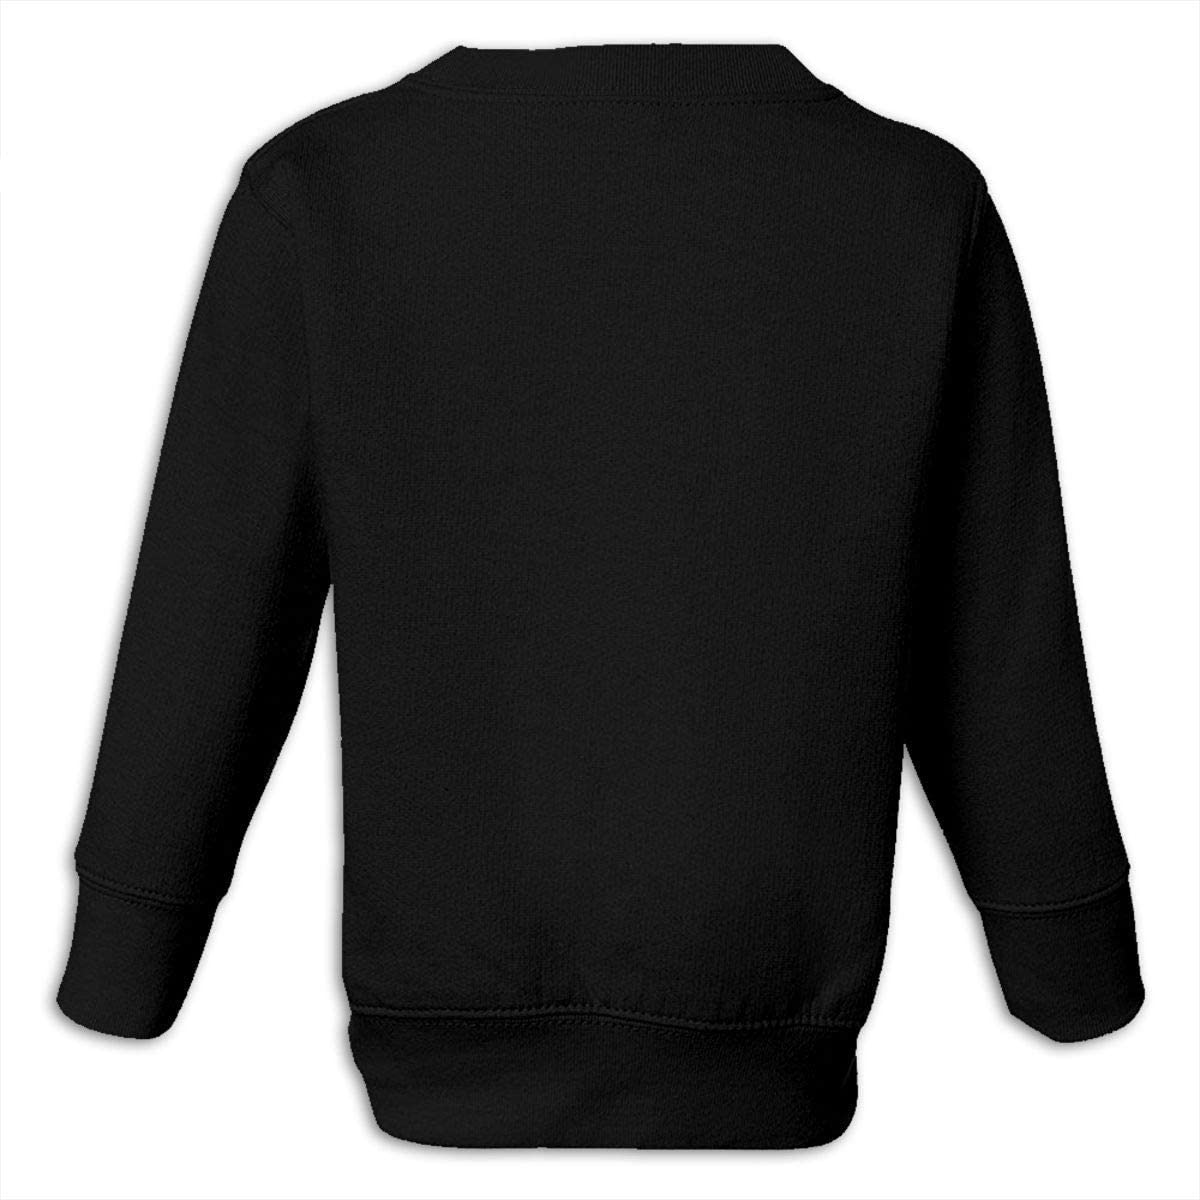 Fist Black Lives Matter Boys Girls Pullover Sweaters Crewneck Sweatshirts Clothes for 2-6 Years Old Children